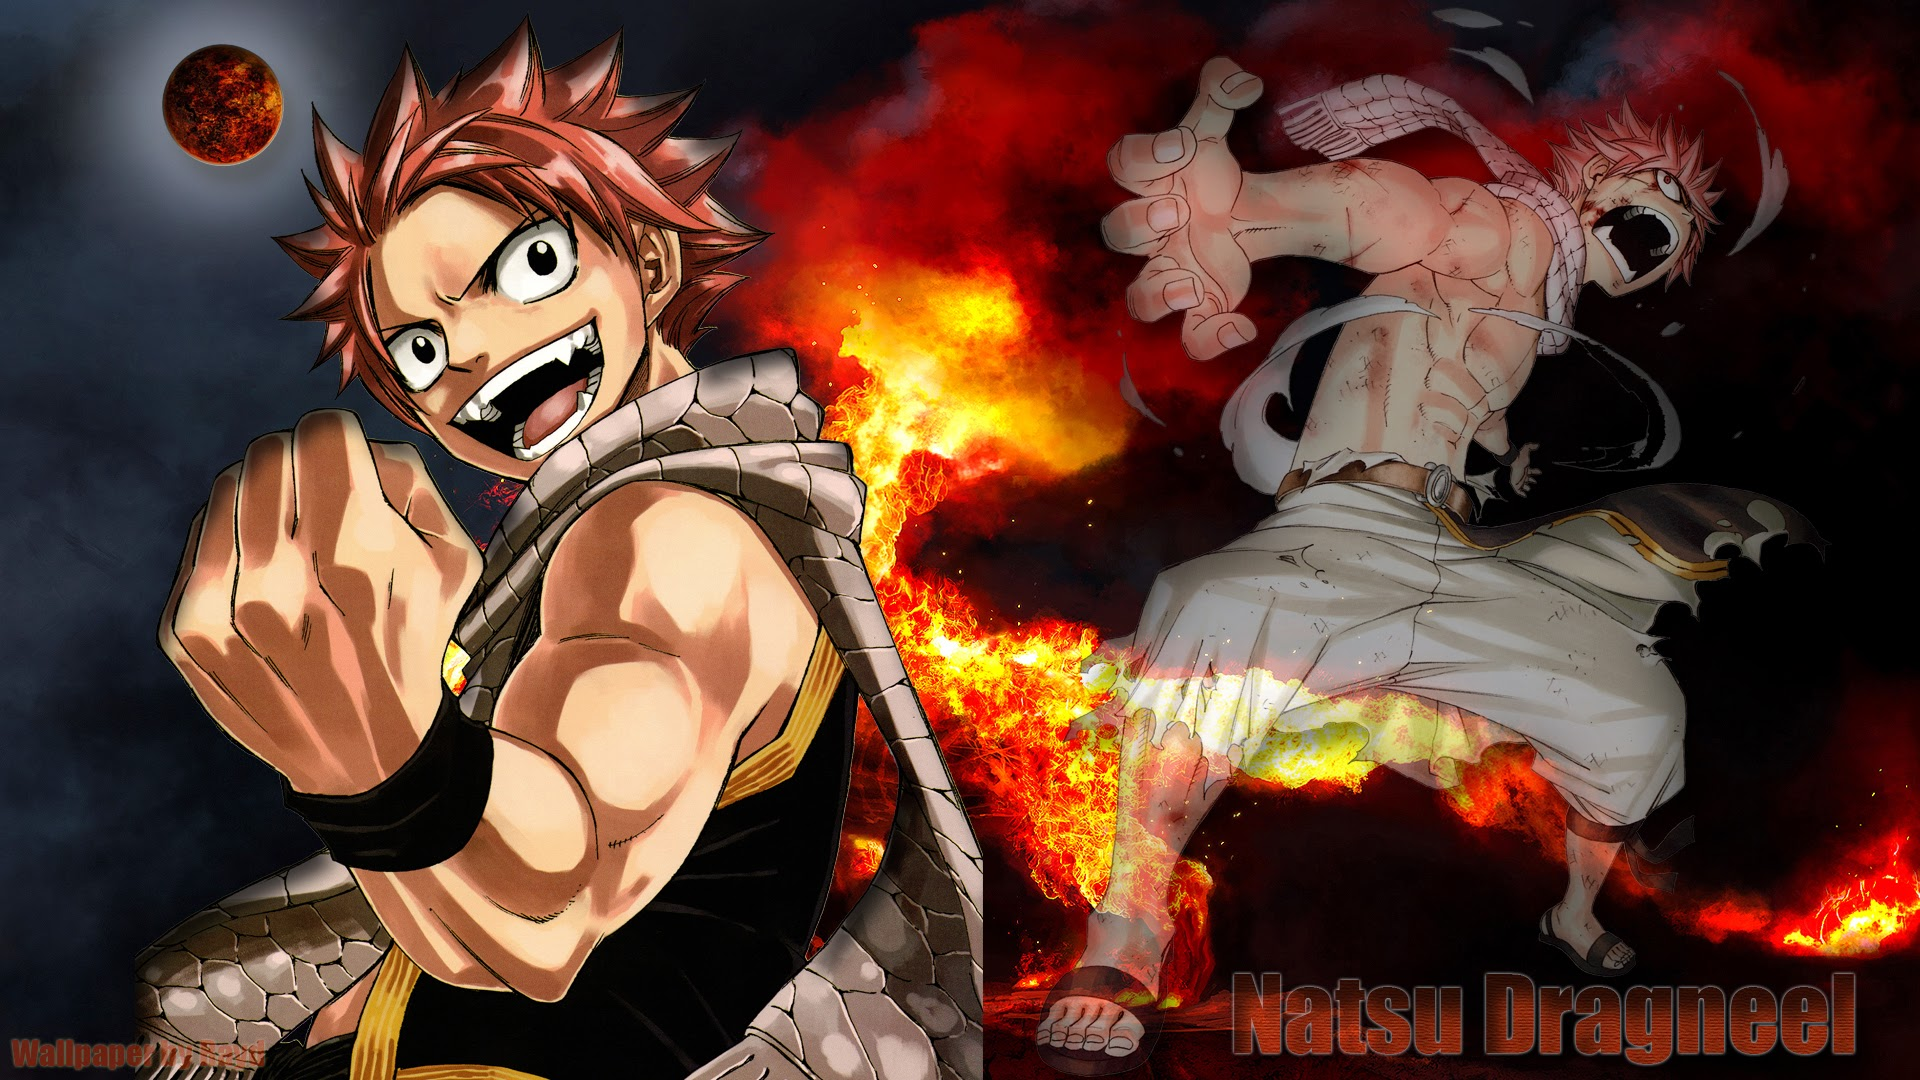 fairy tail natsu anime picture 8c wallpaper hd